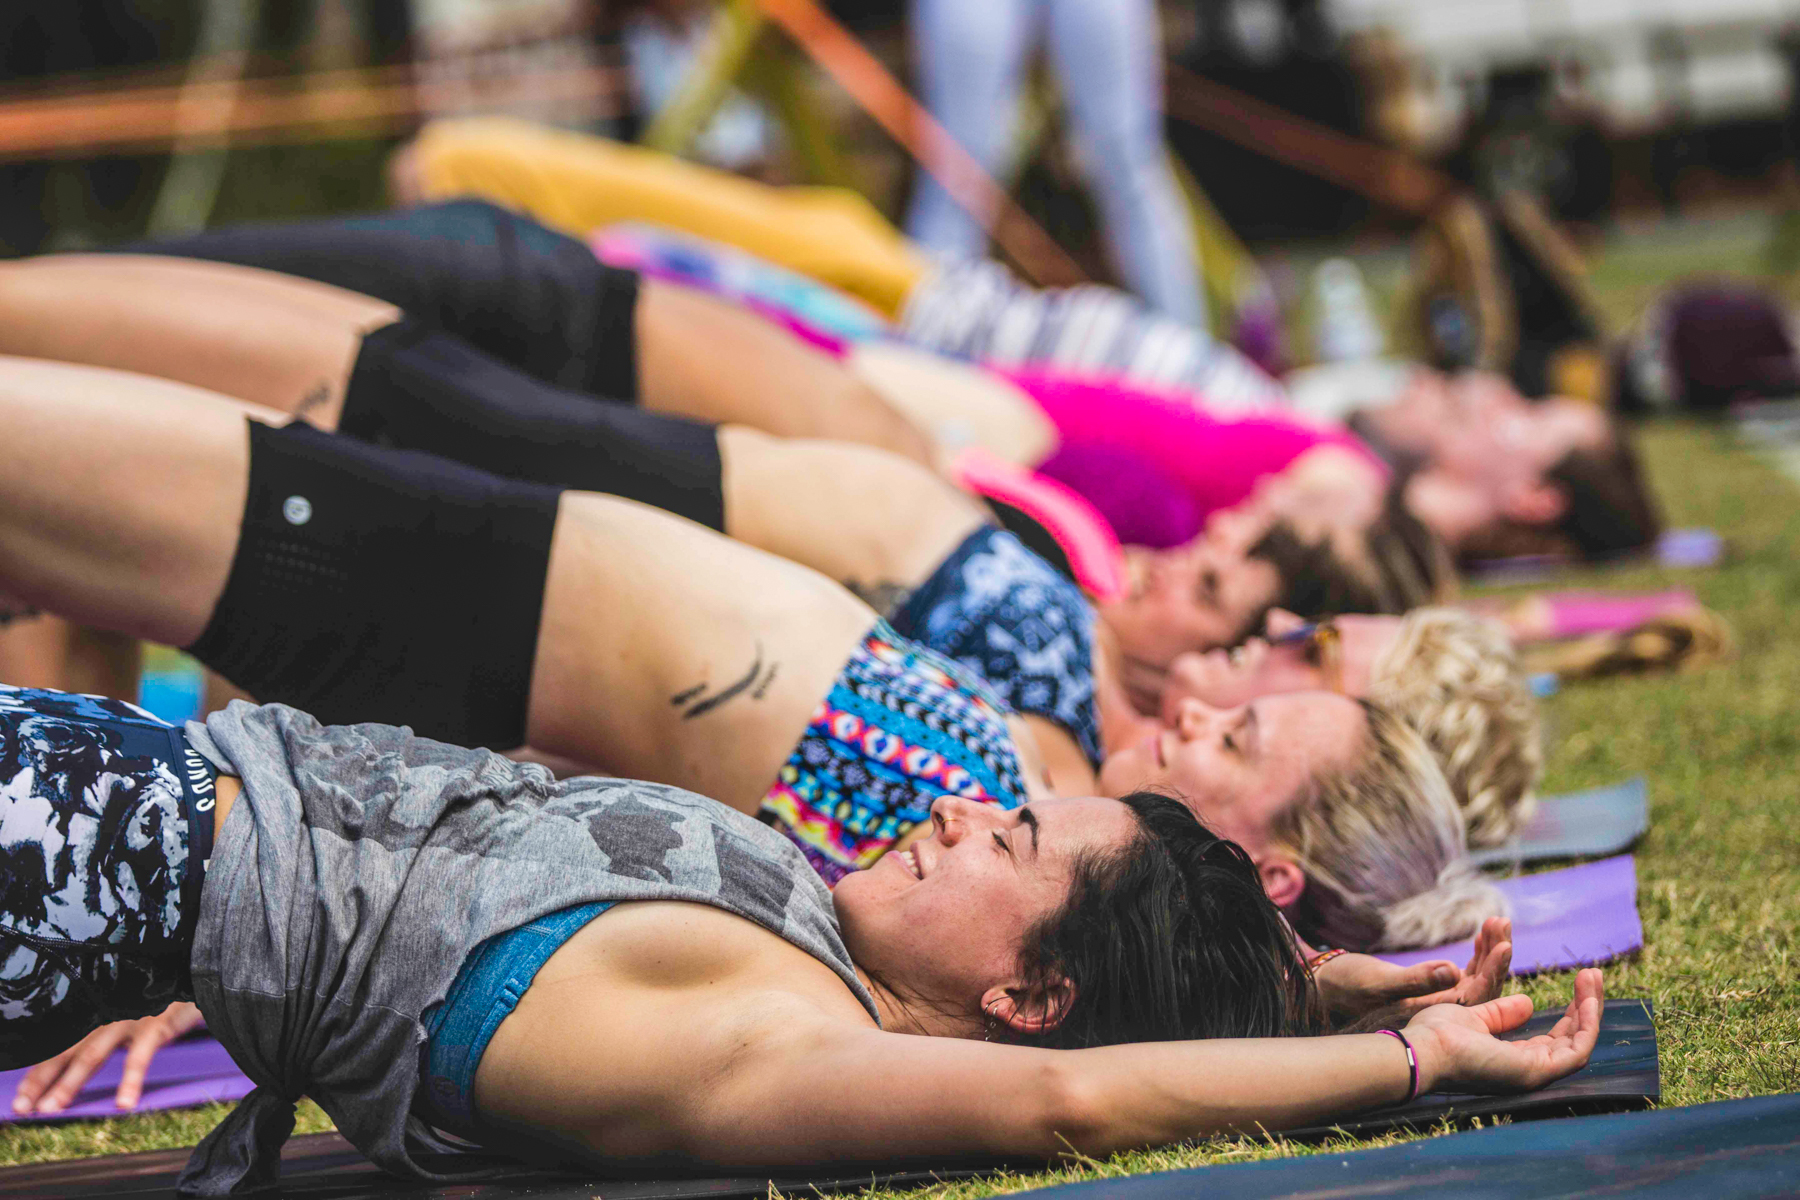 Wanderlust Festivals offer a blissful assault for the senses - body, mind and soul connected. Image © Tom Martin Media